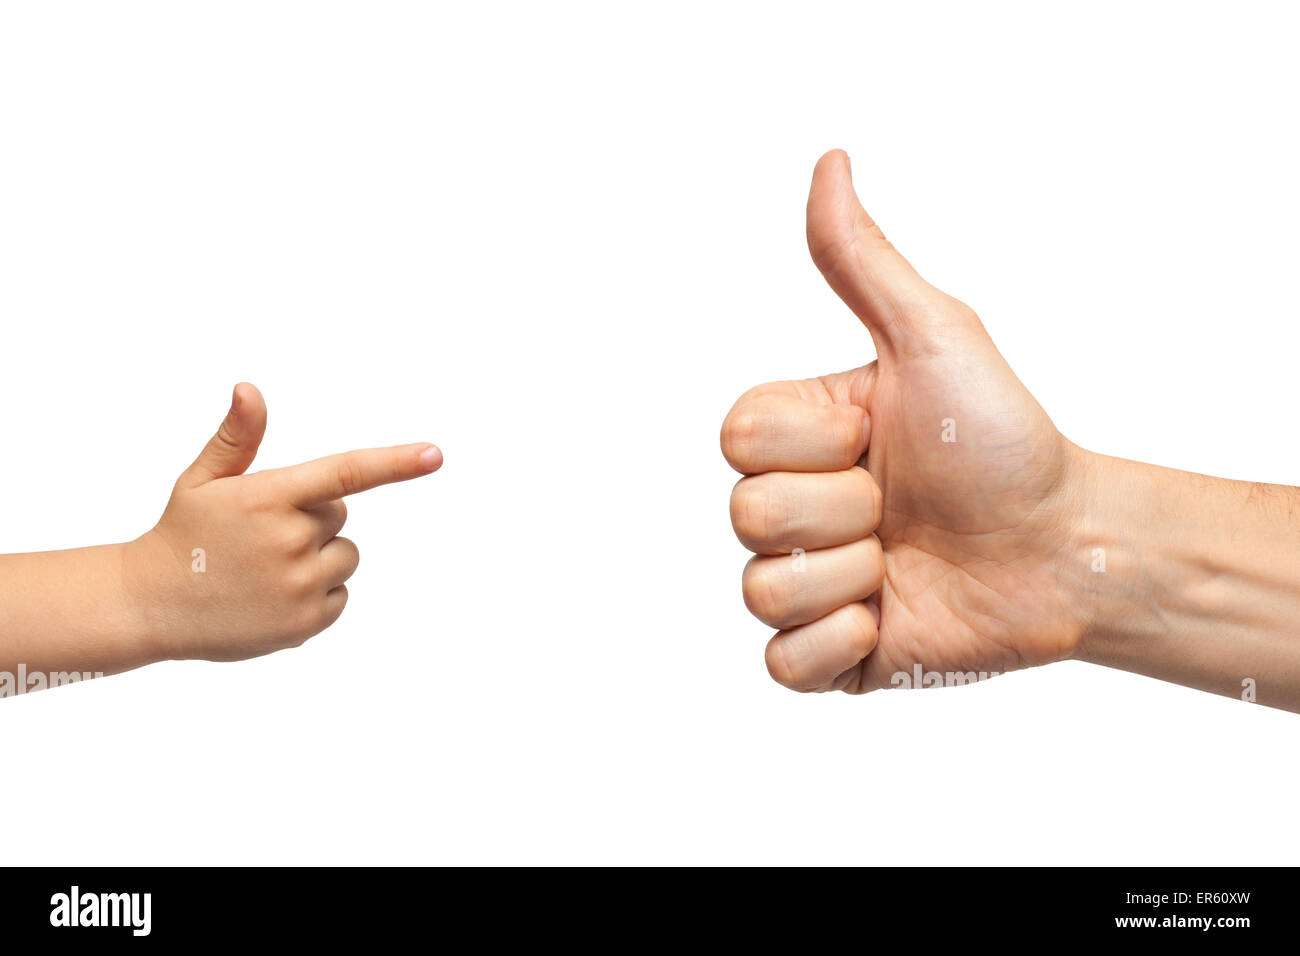 father and son hands giving like and pointing, or gun gesture on white background. Isolated - Stock Image